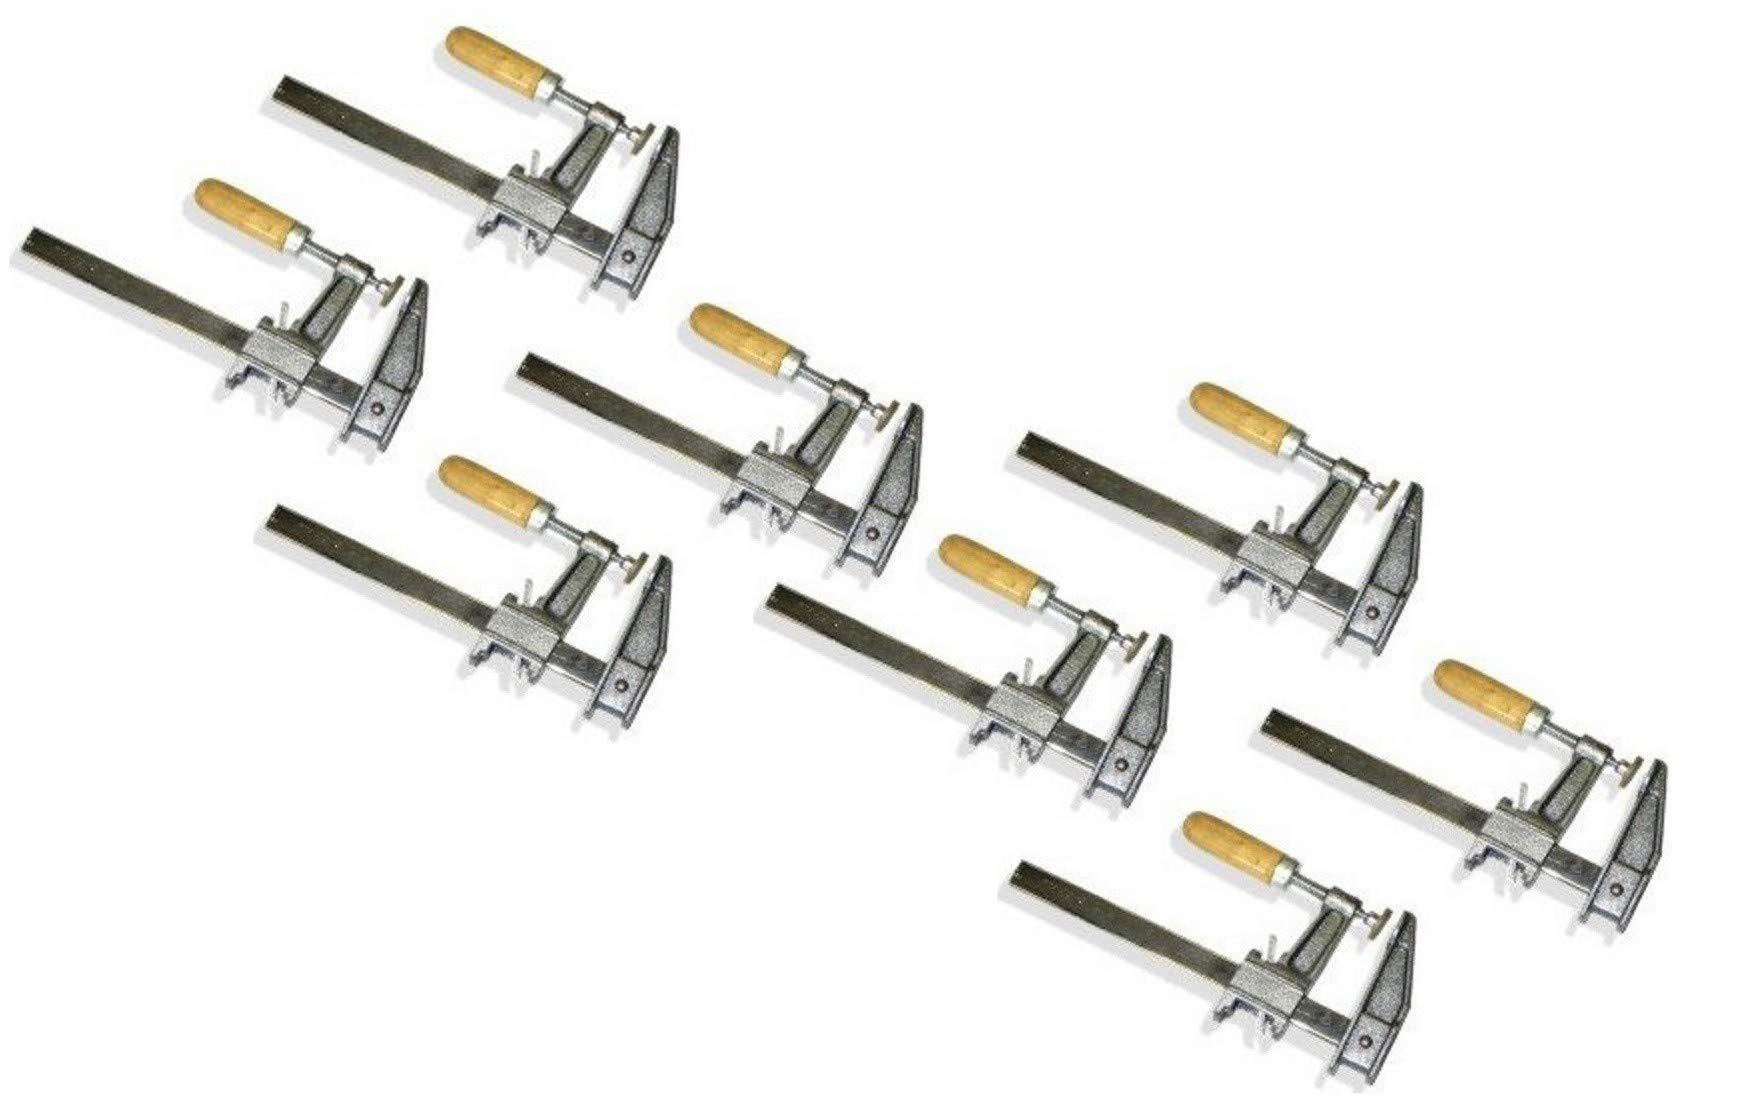 Set of 8 24'' Inch Bar Clamps Heavy Duty Woodworking Wood Carpenter Tools